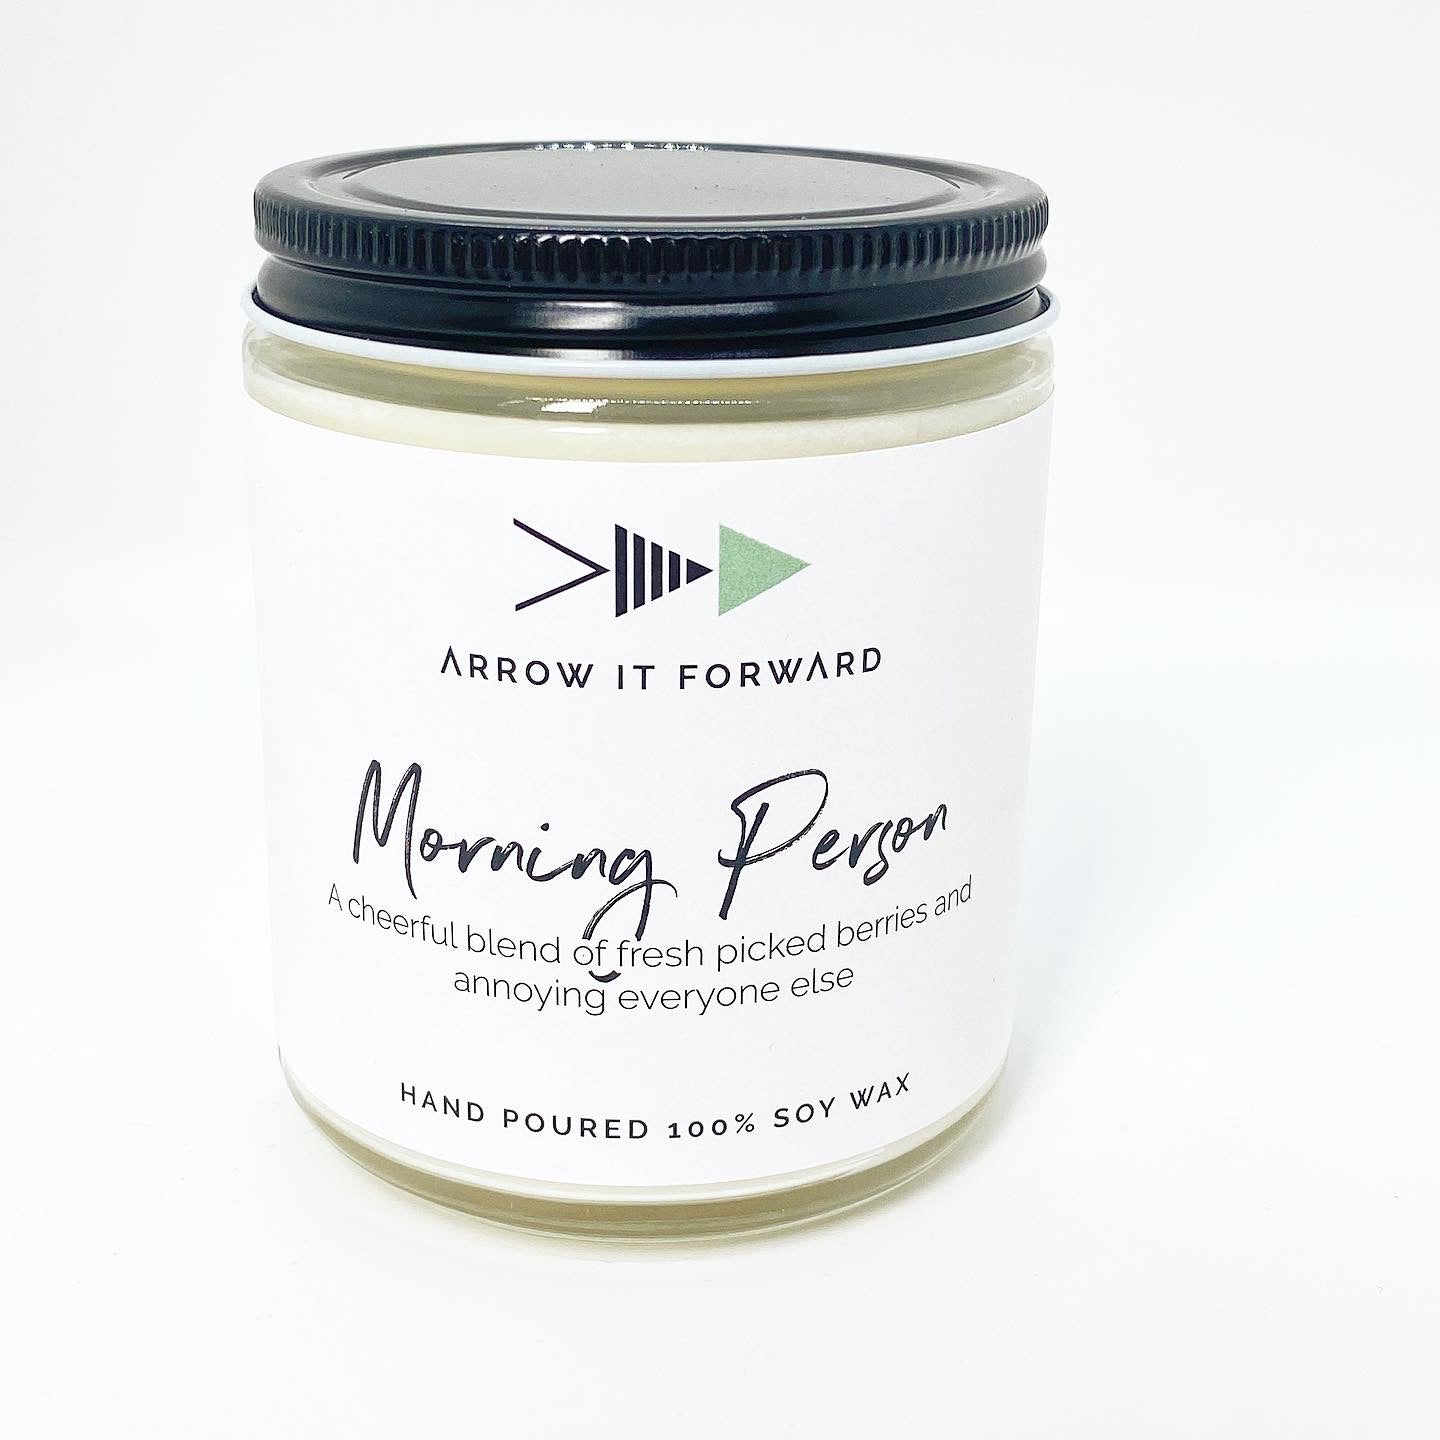 MORNING PERSON SOY CANDLE